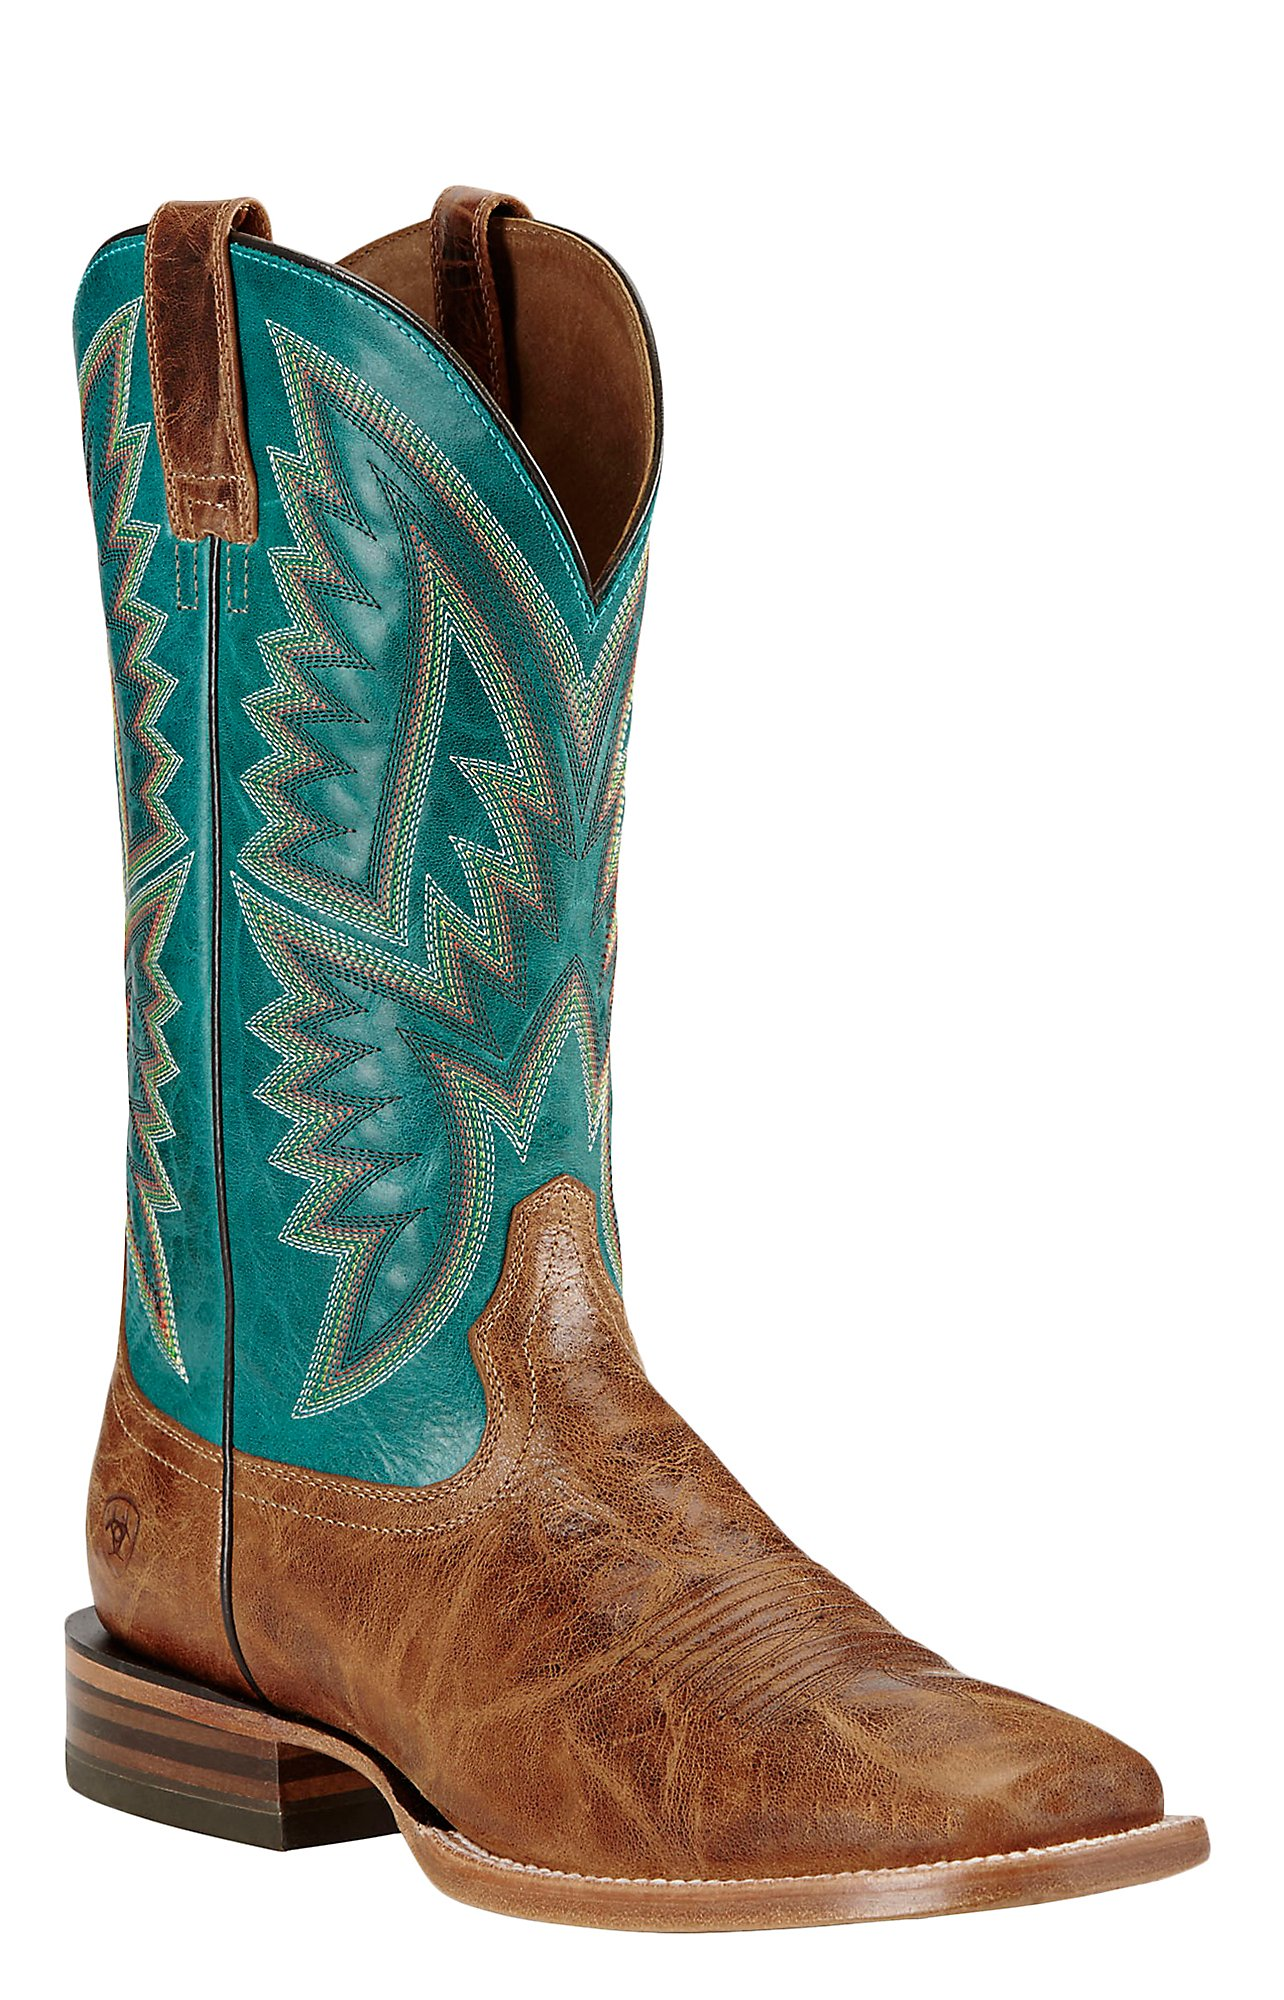 Overview About Cavenders Boot City: Cavenders Boot City is a company in San Antonio, TX categorized under shopping.